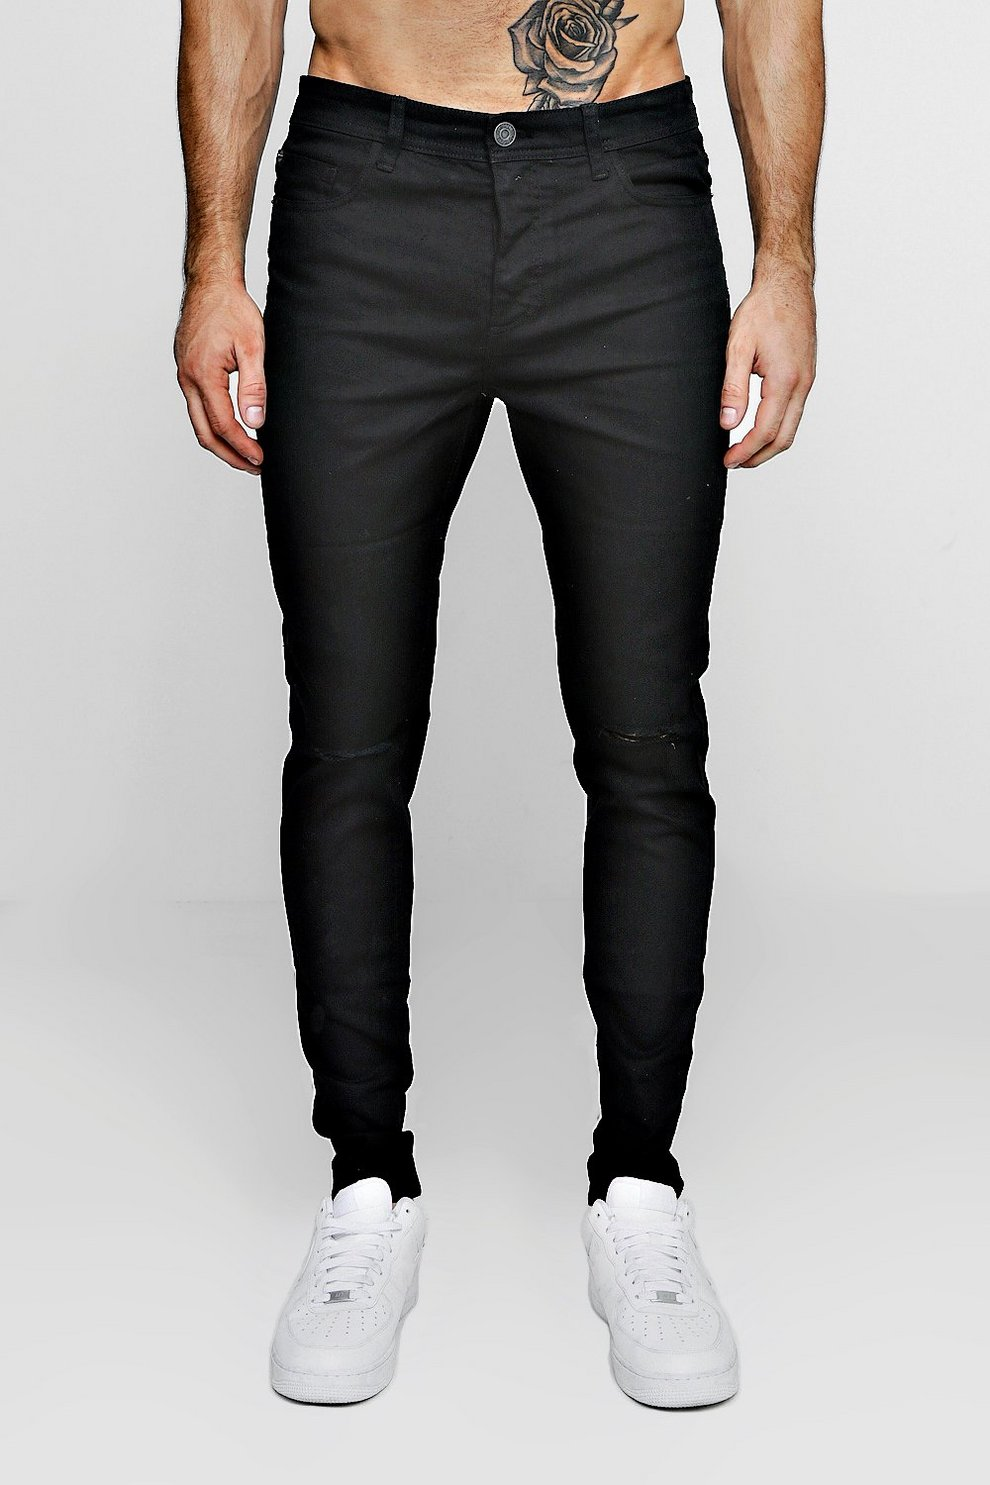 37cd25feaa75 Black Stretch Skinny Jeans With Ripped Knees | Boohoo